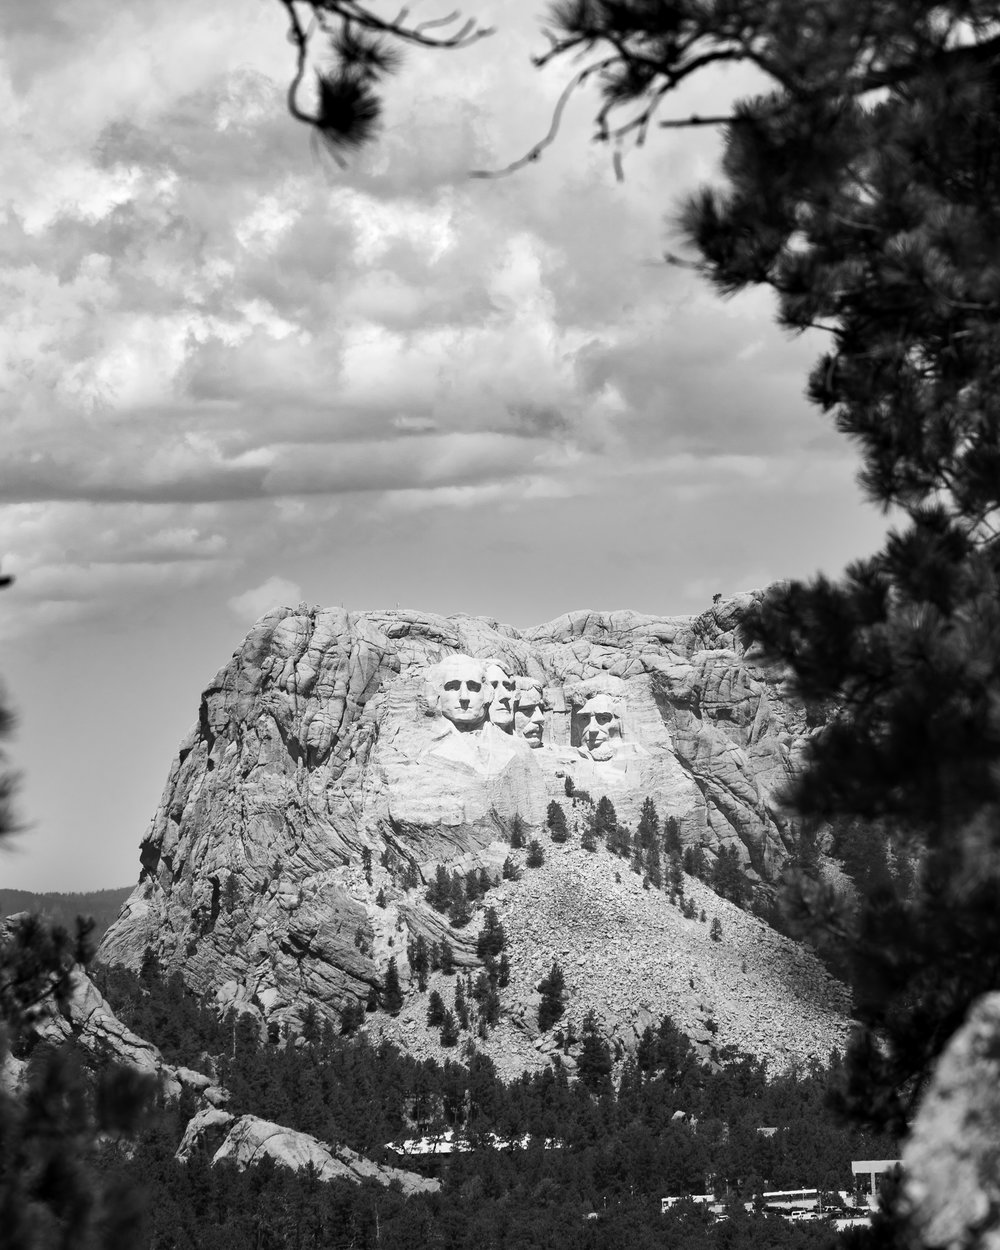 View of Mount Rushmore from Iron Mountain Rd, Black Hills, S.D.